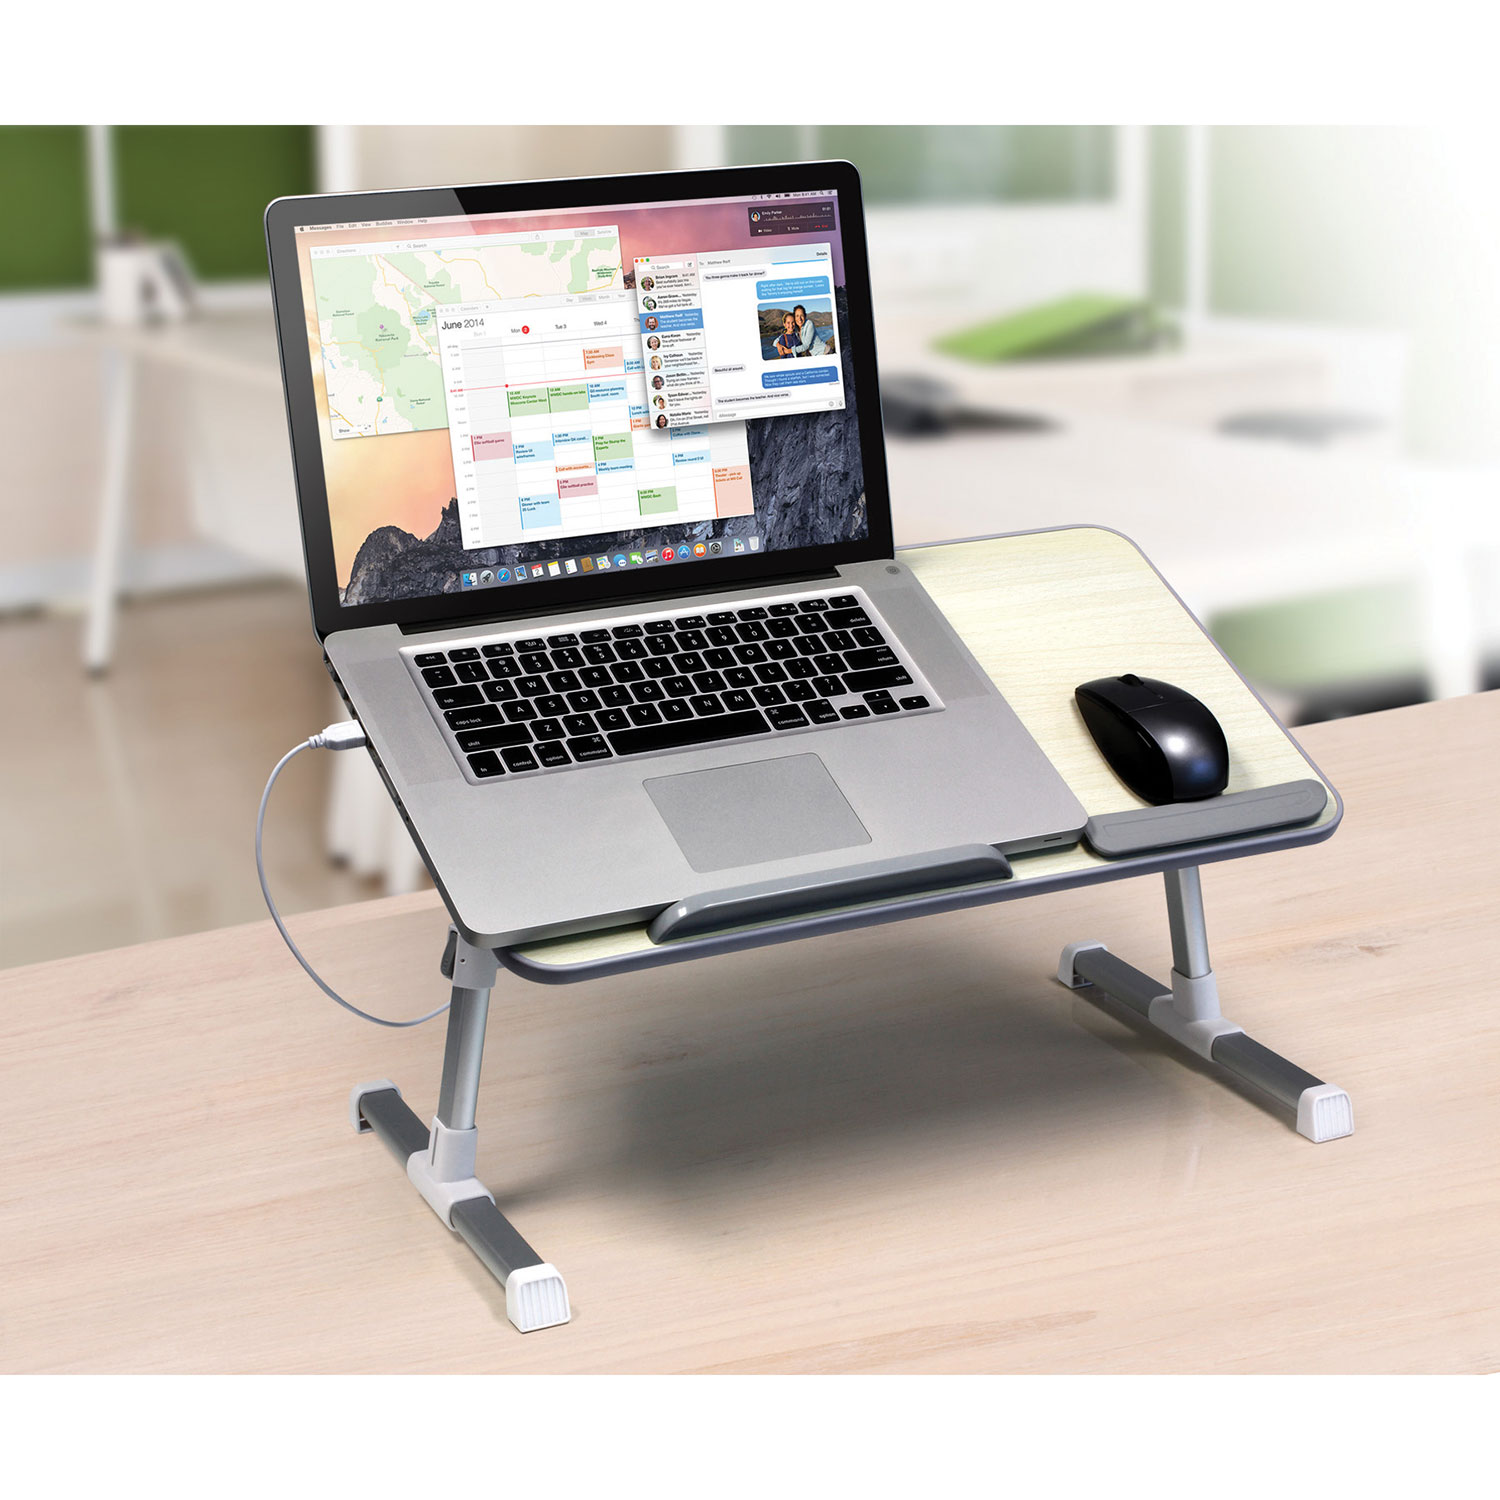 Hp notebook quickdock price - Aluratek Ergonomic Laptop Cooling Table With Fan